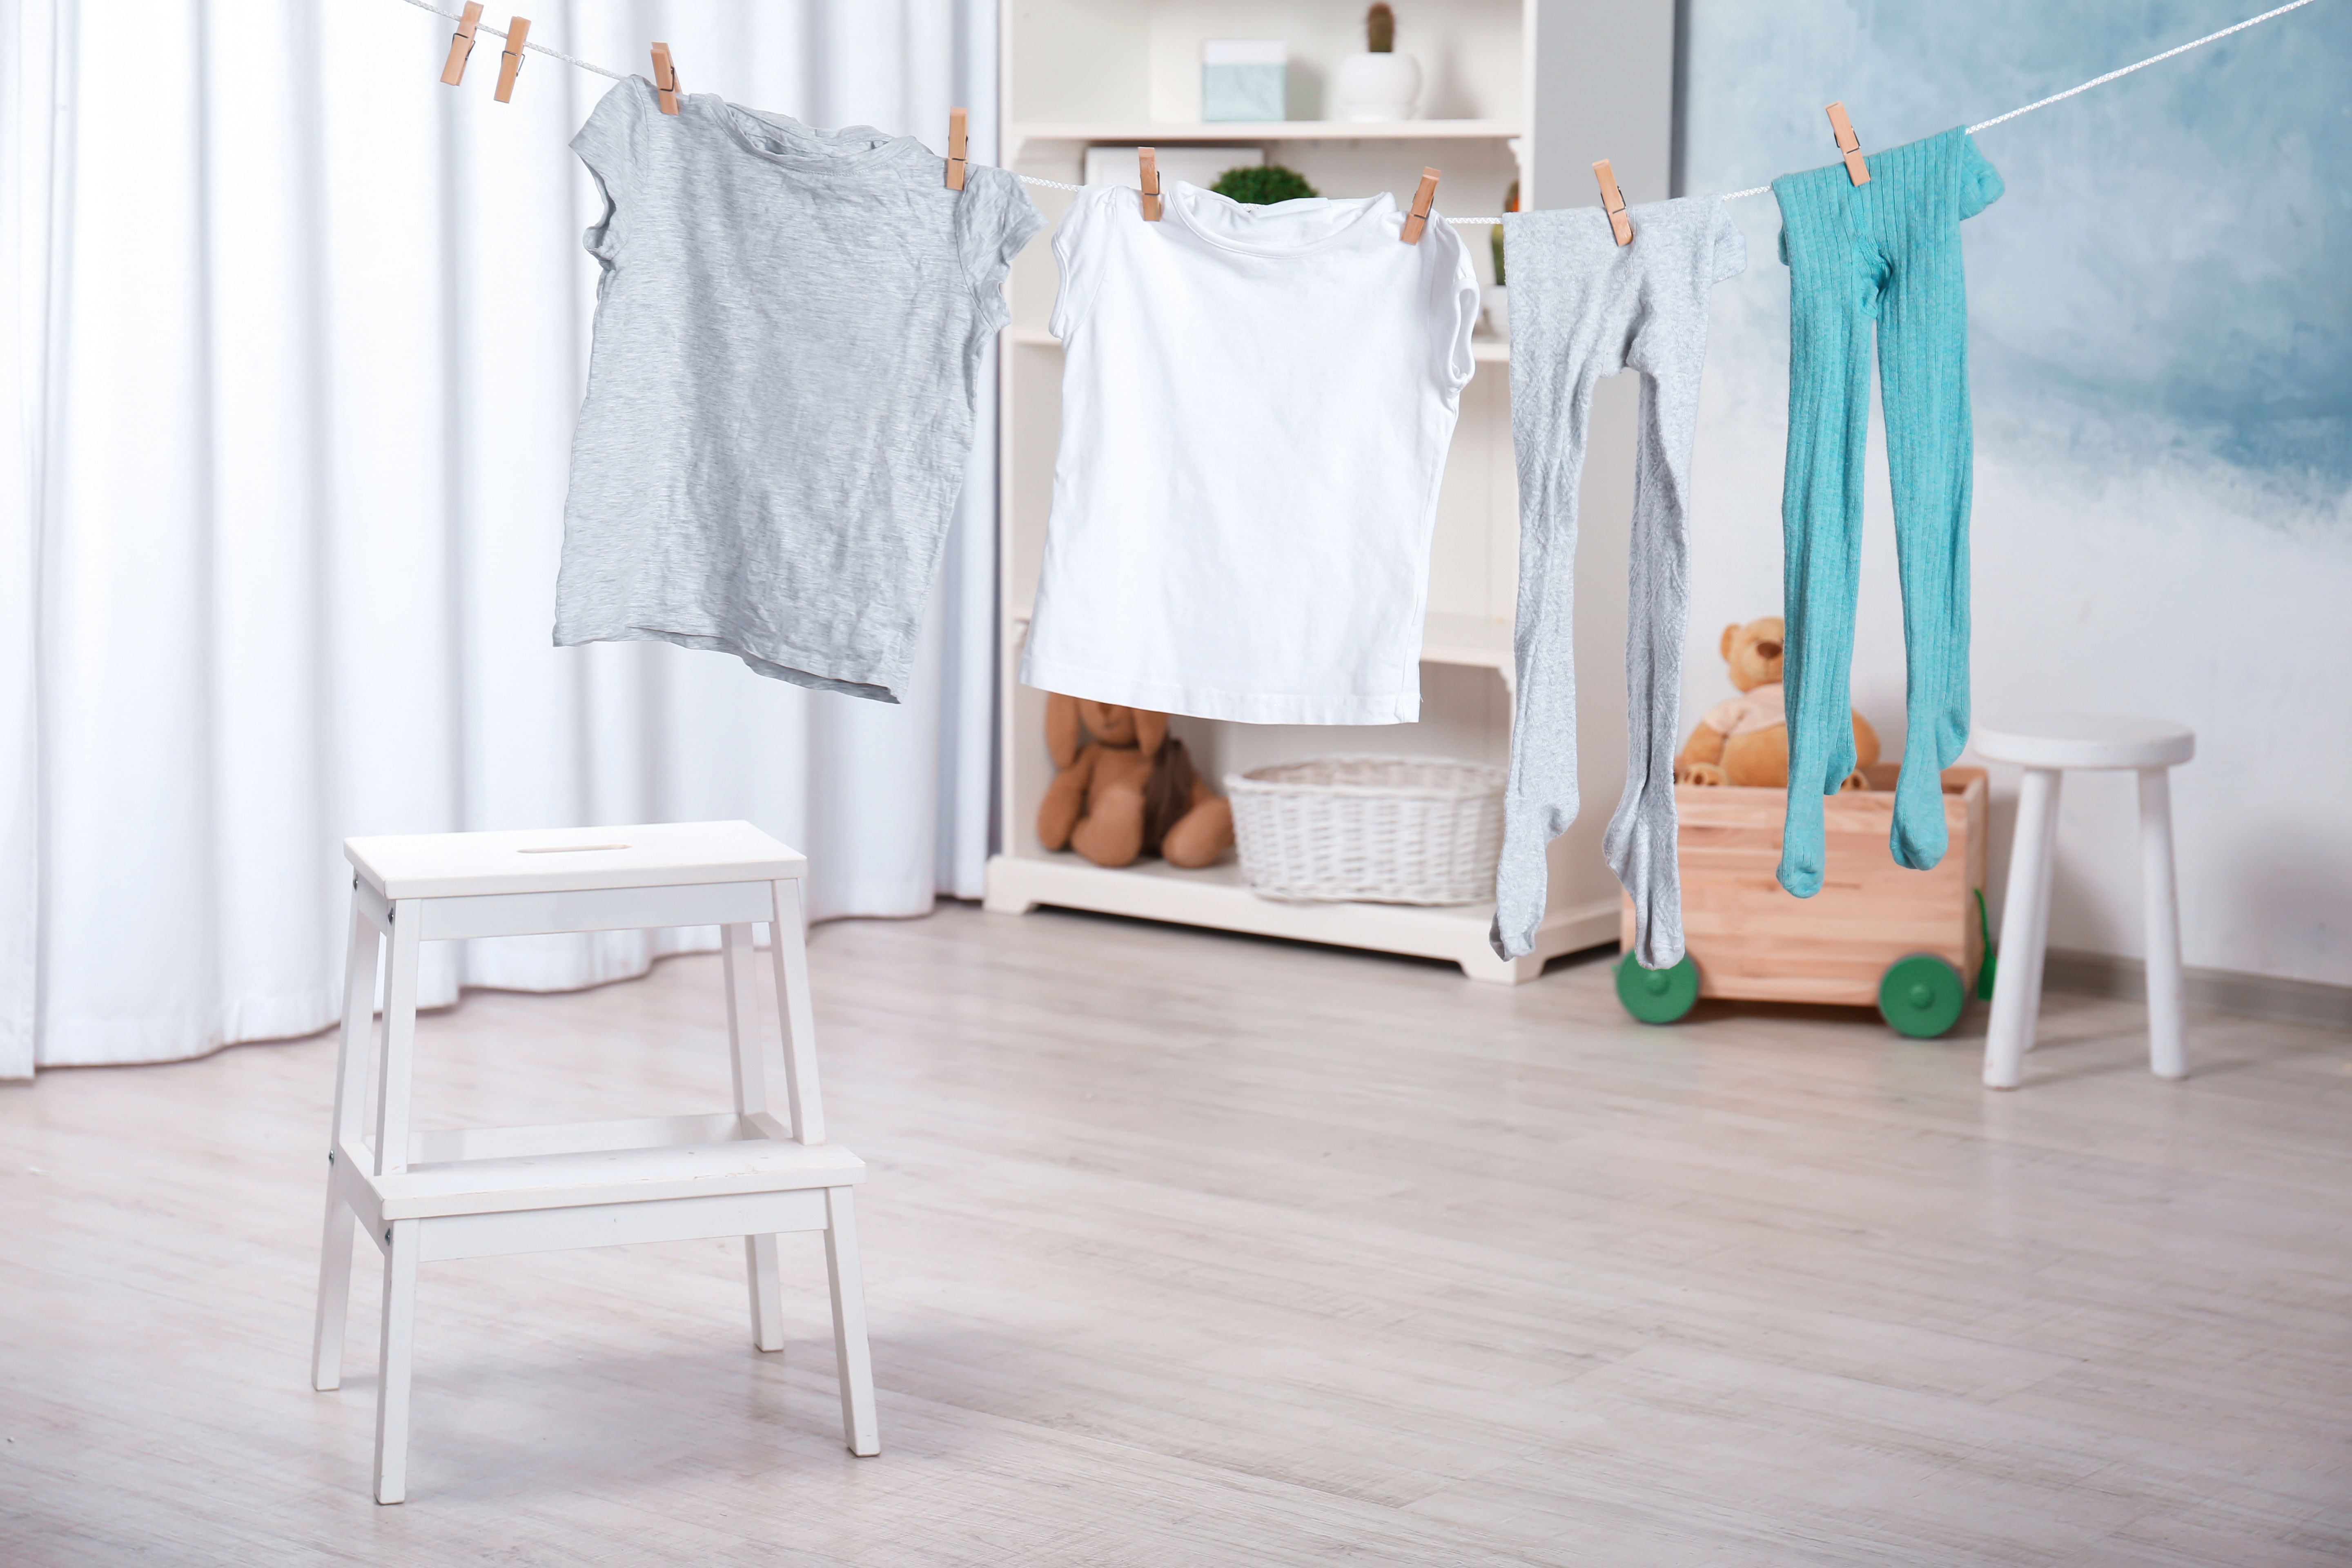 How to dry clothes indoors quickly